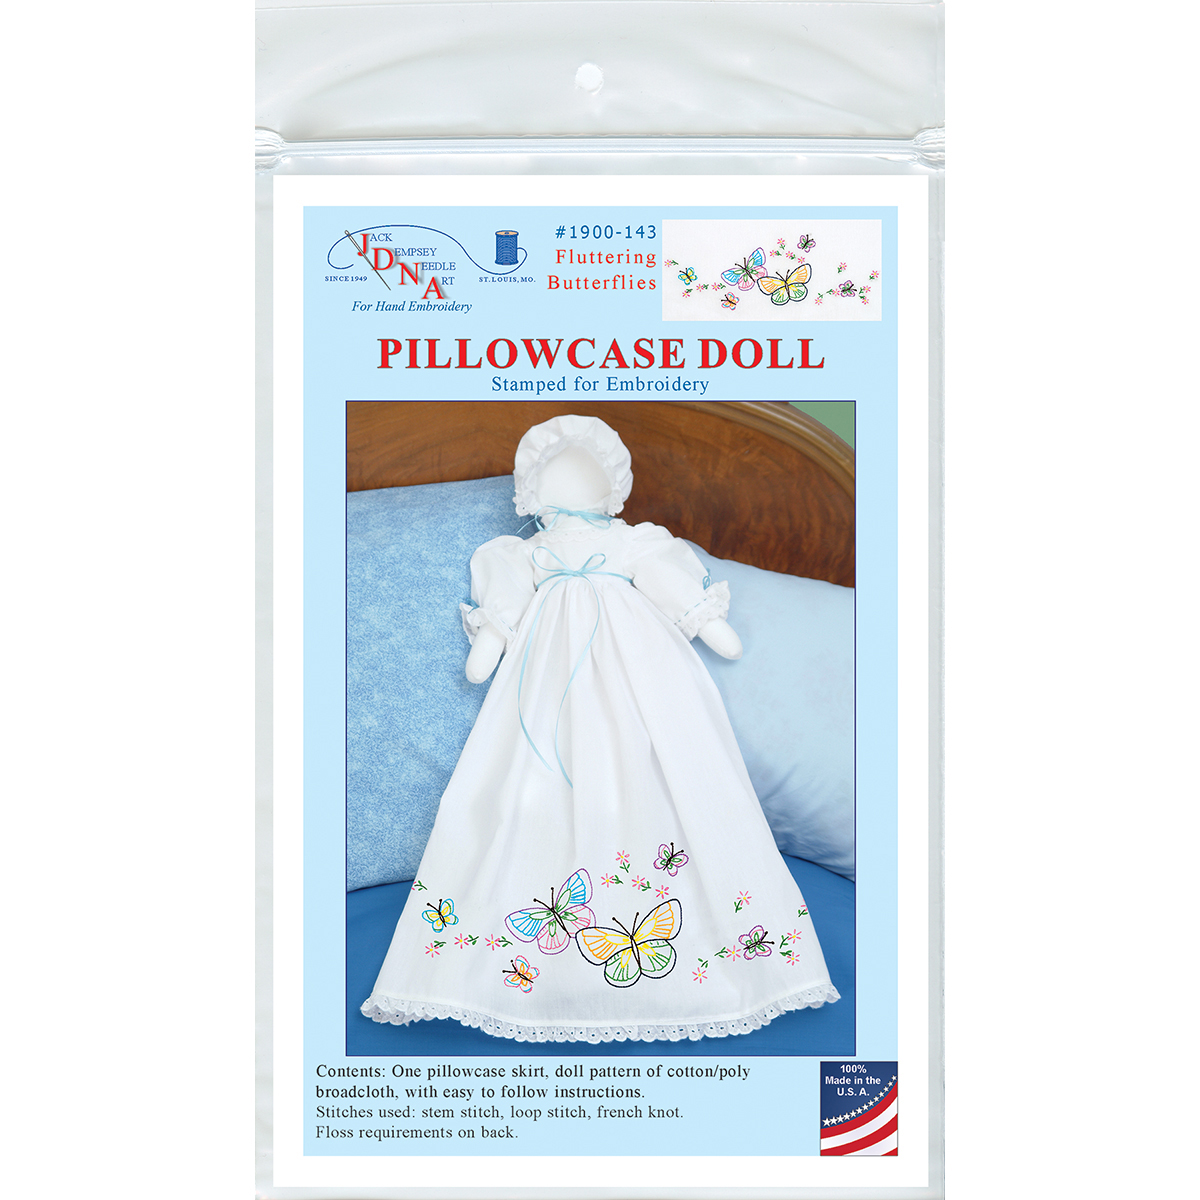 Stamped White Pillowcase Doll Kit-Fluttering Butterflies